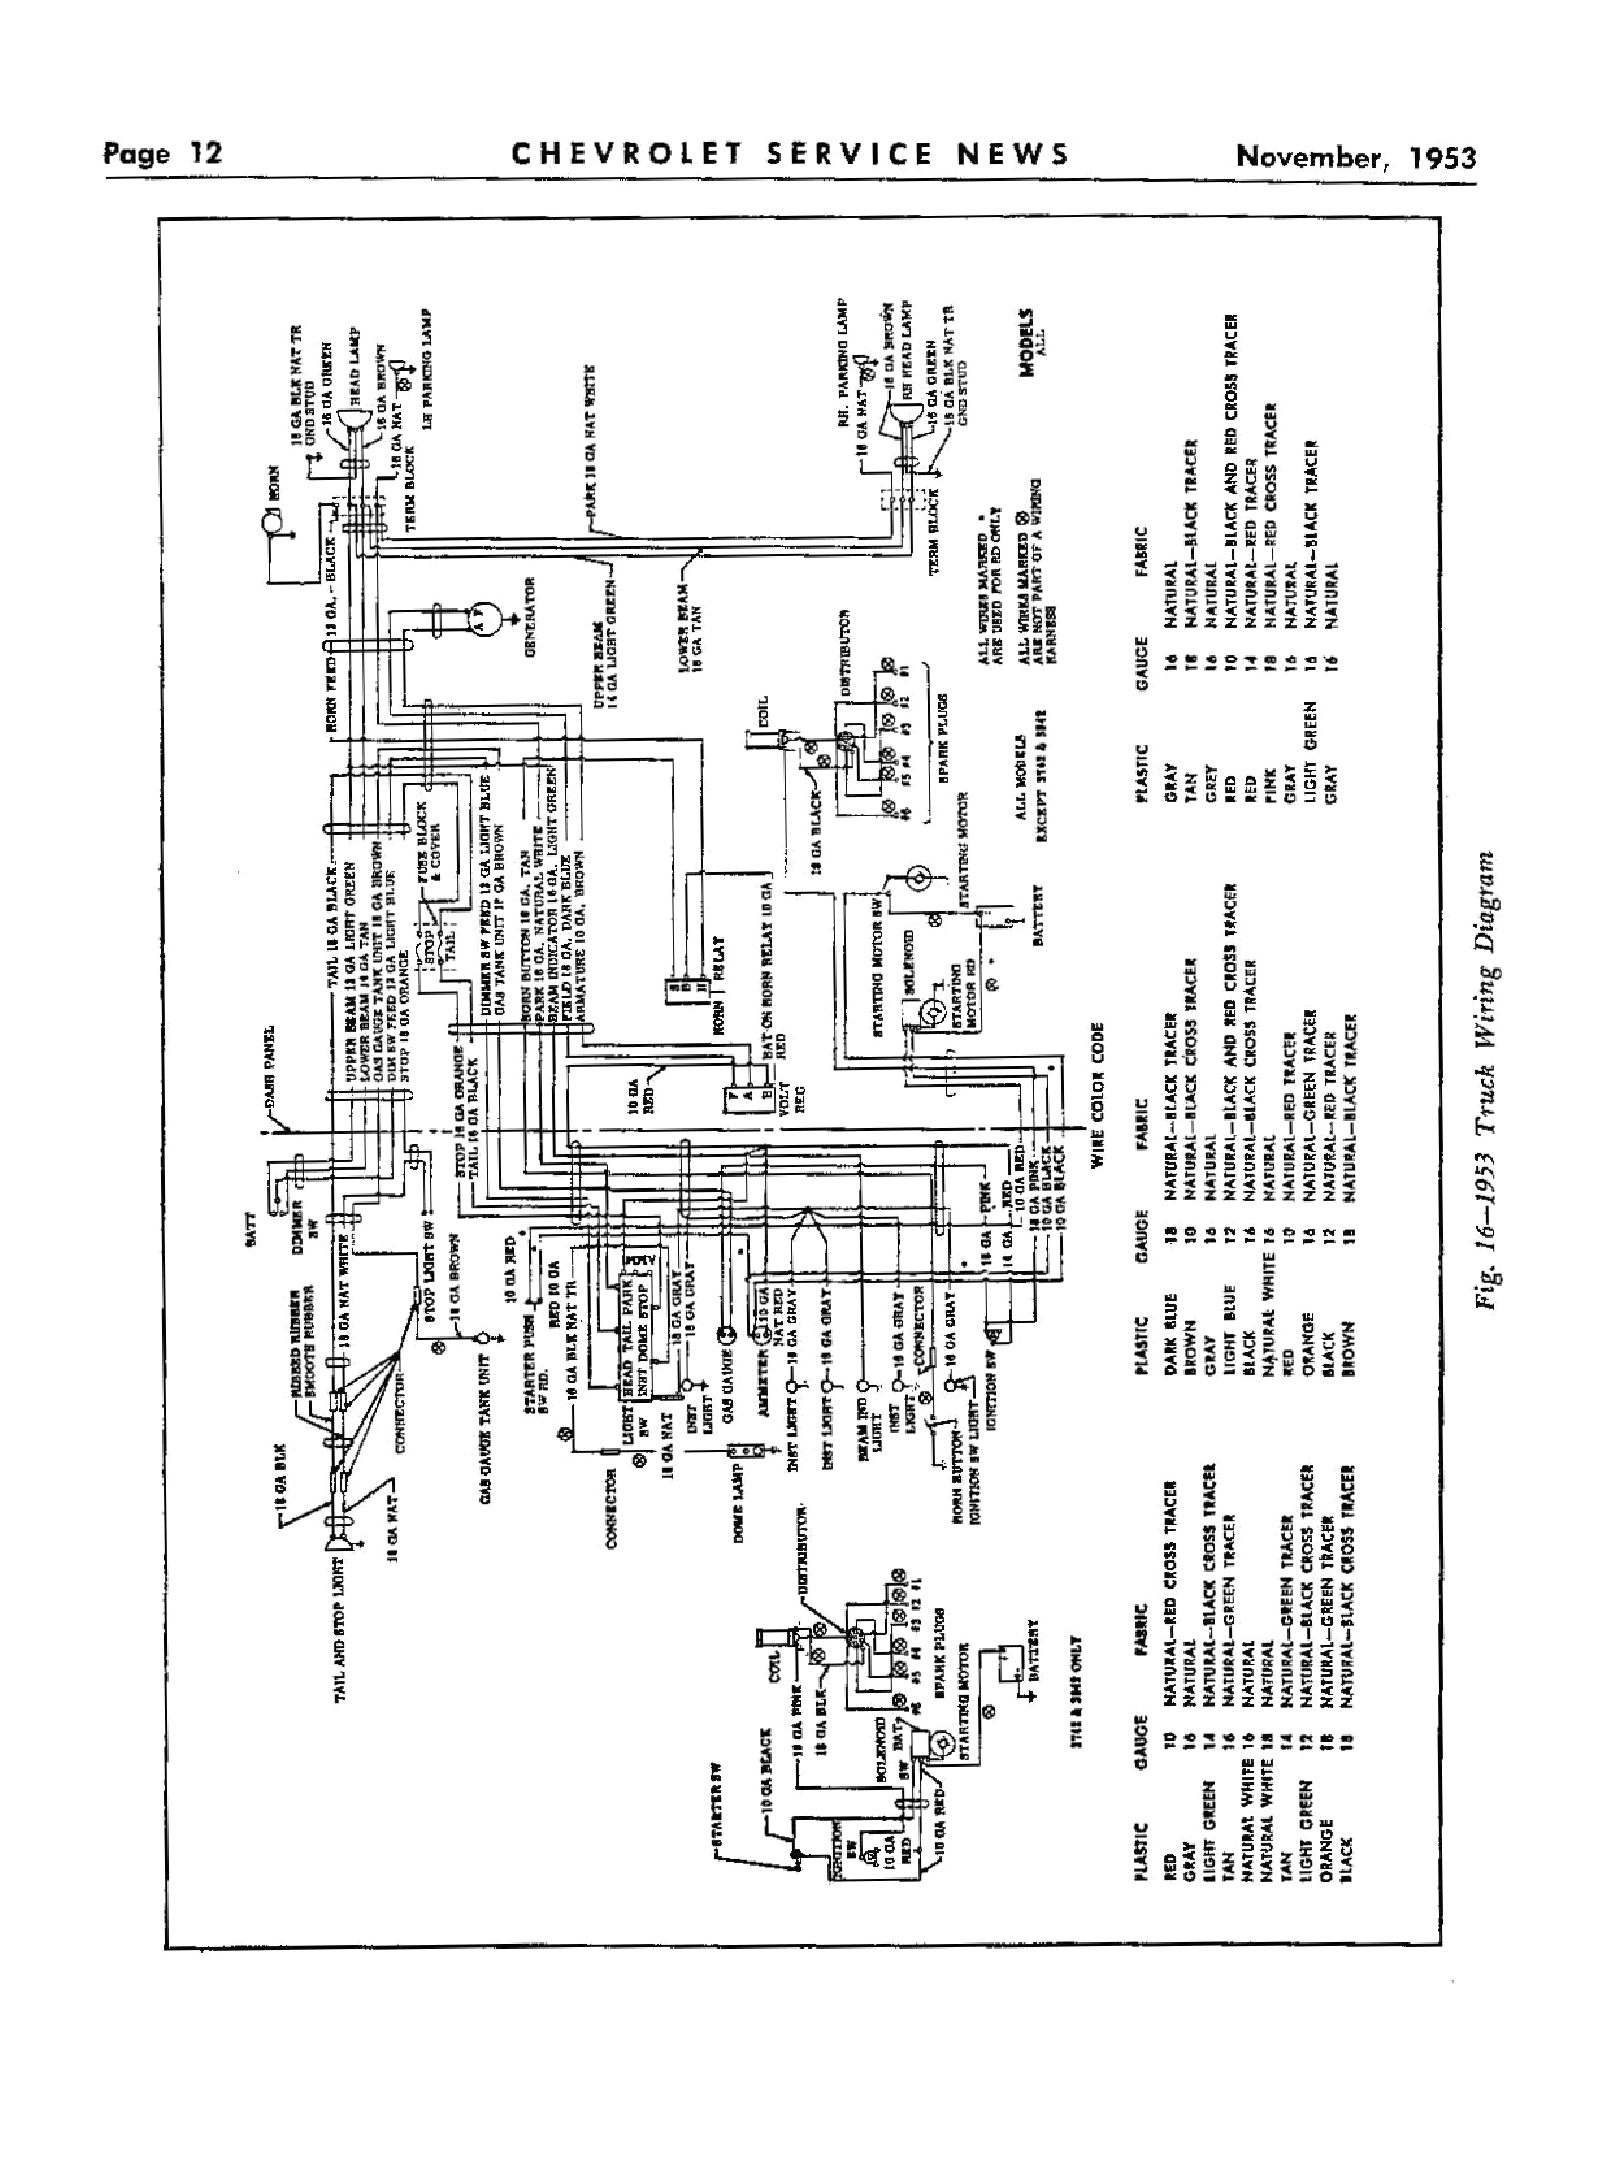 ignition wiring diagram besides 1952 ford pickup truck moreover rh 1 33 32 datschmeckt de